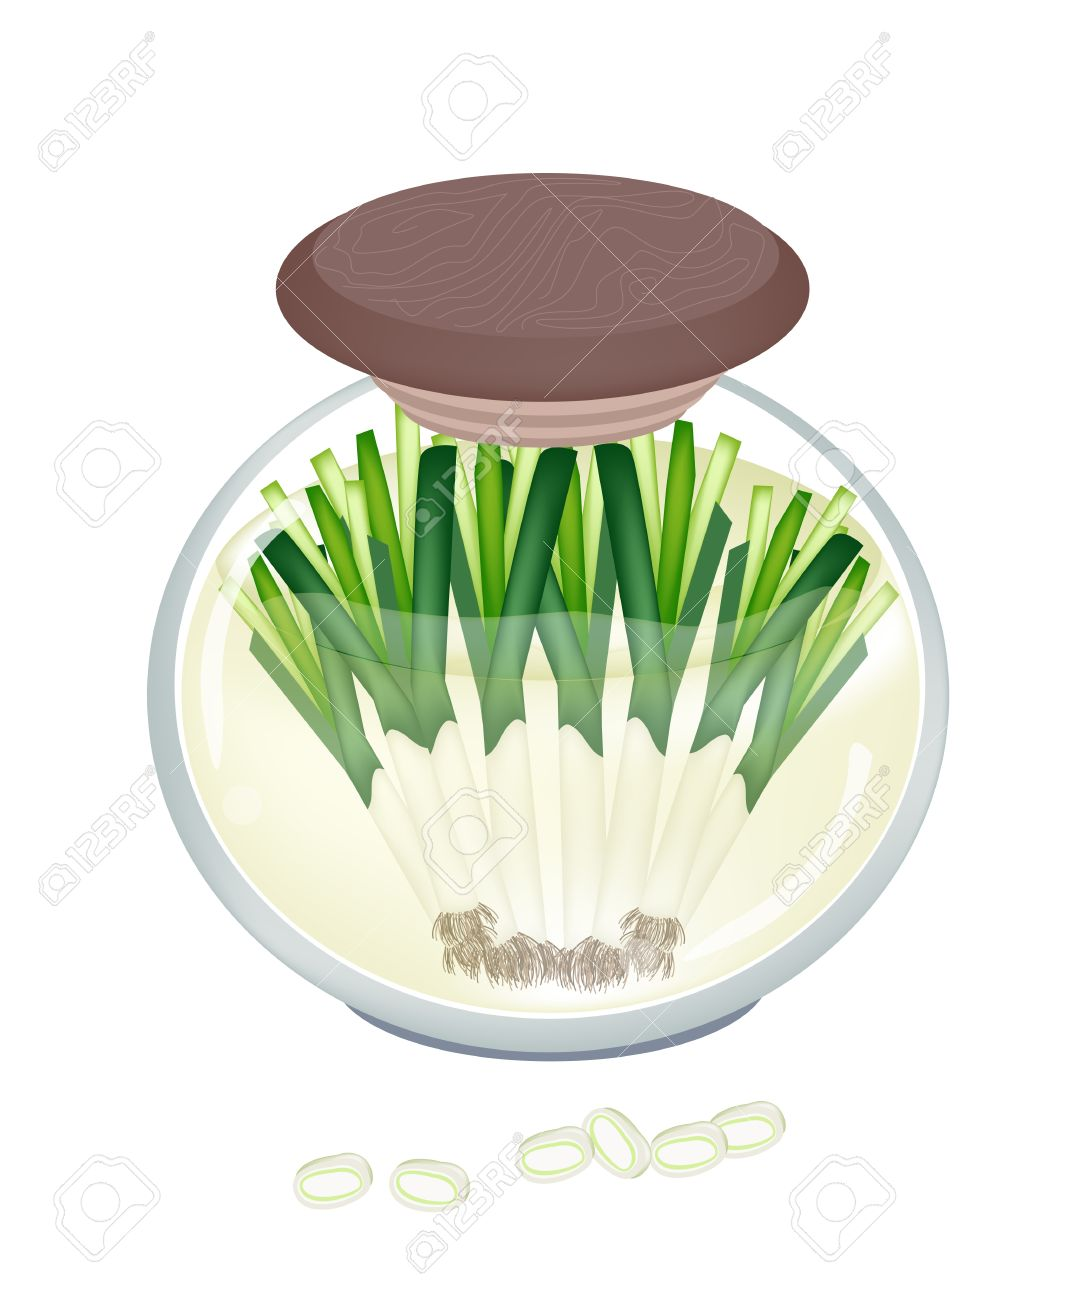 Vegetable And Herb, Illustration Of Delicious Pickled Leeks Or.